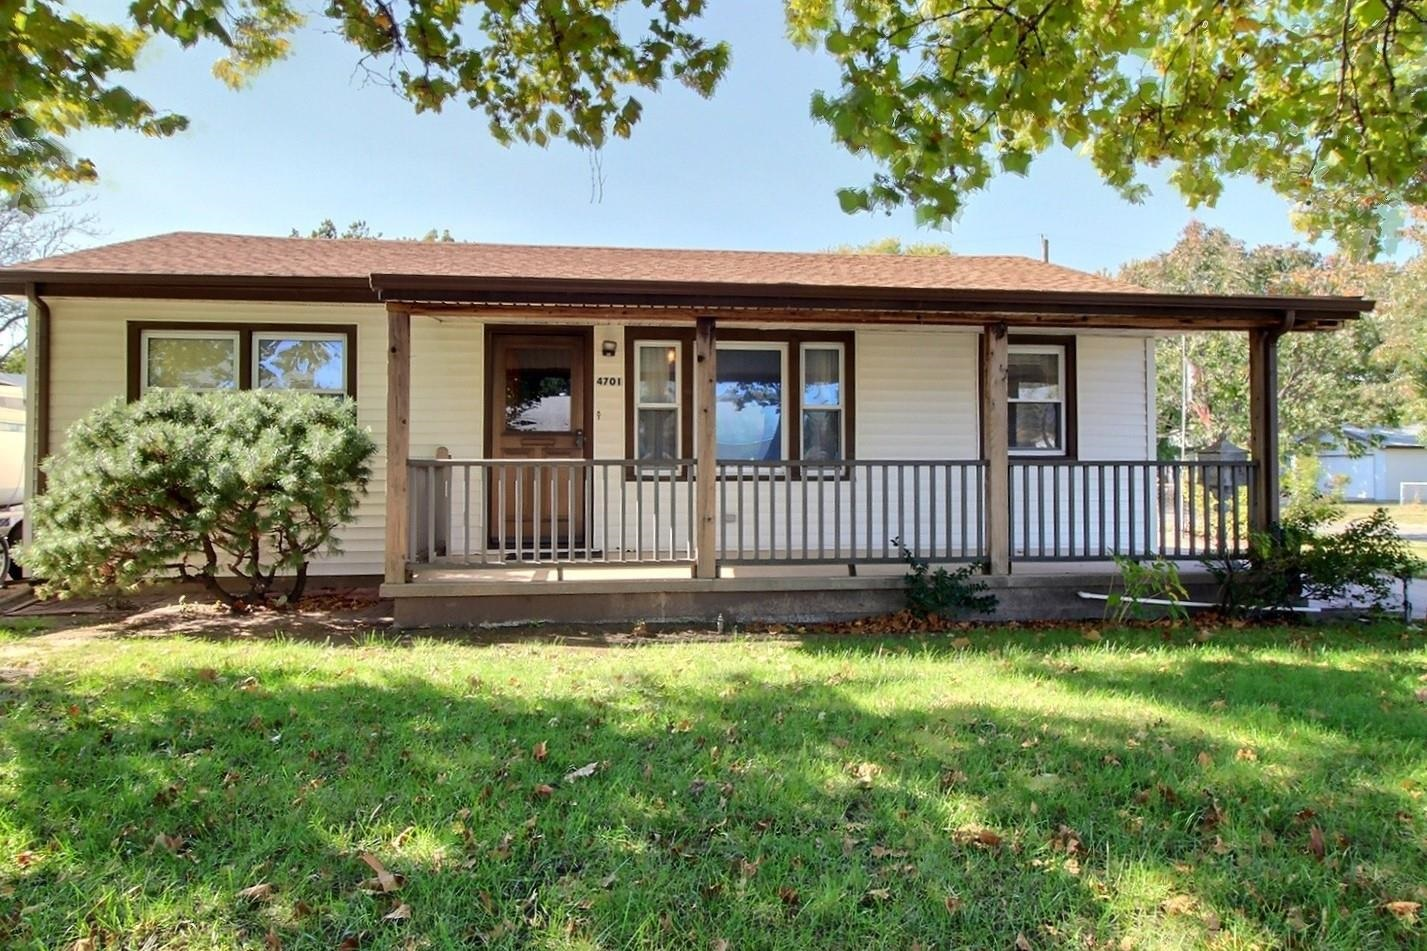 This incredibly well-maintained home has been with the same owner for more than 40 years!  There are